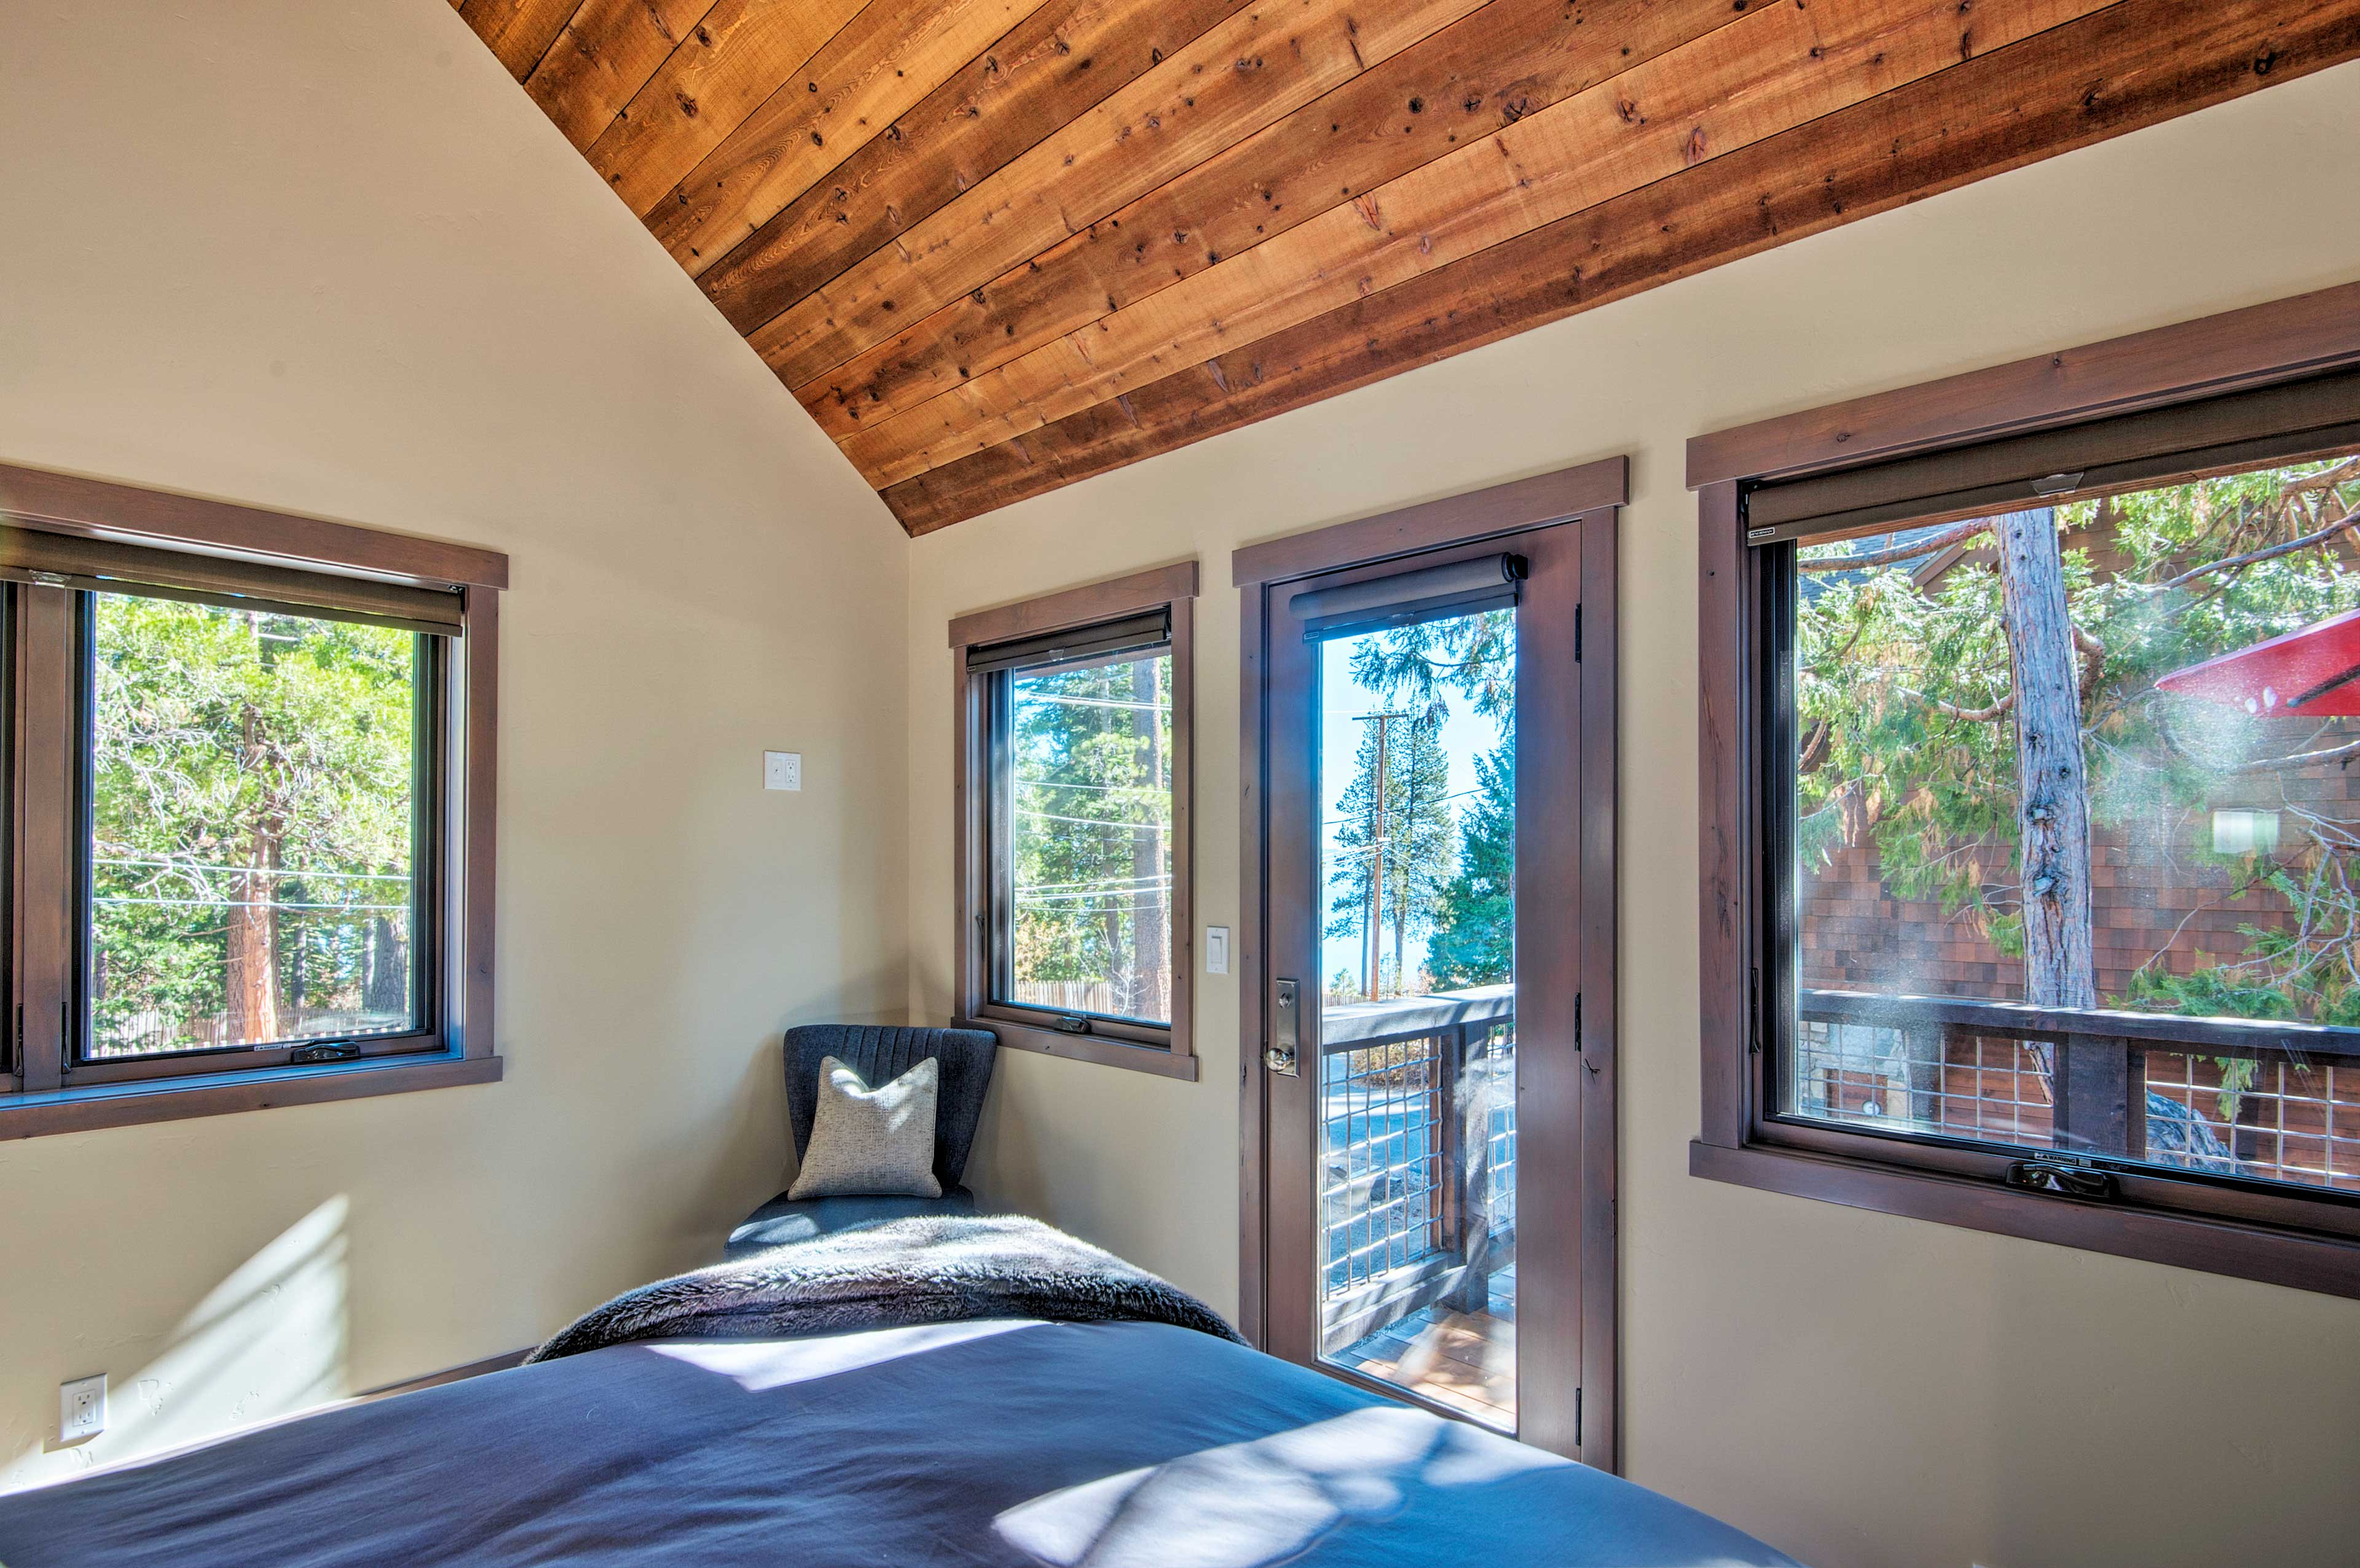 Wake up & smell the fresh lake air with direct balcony access.